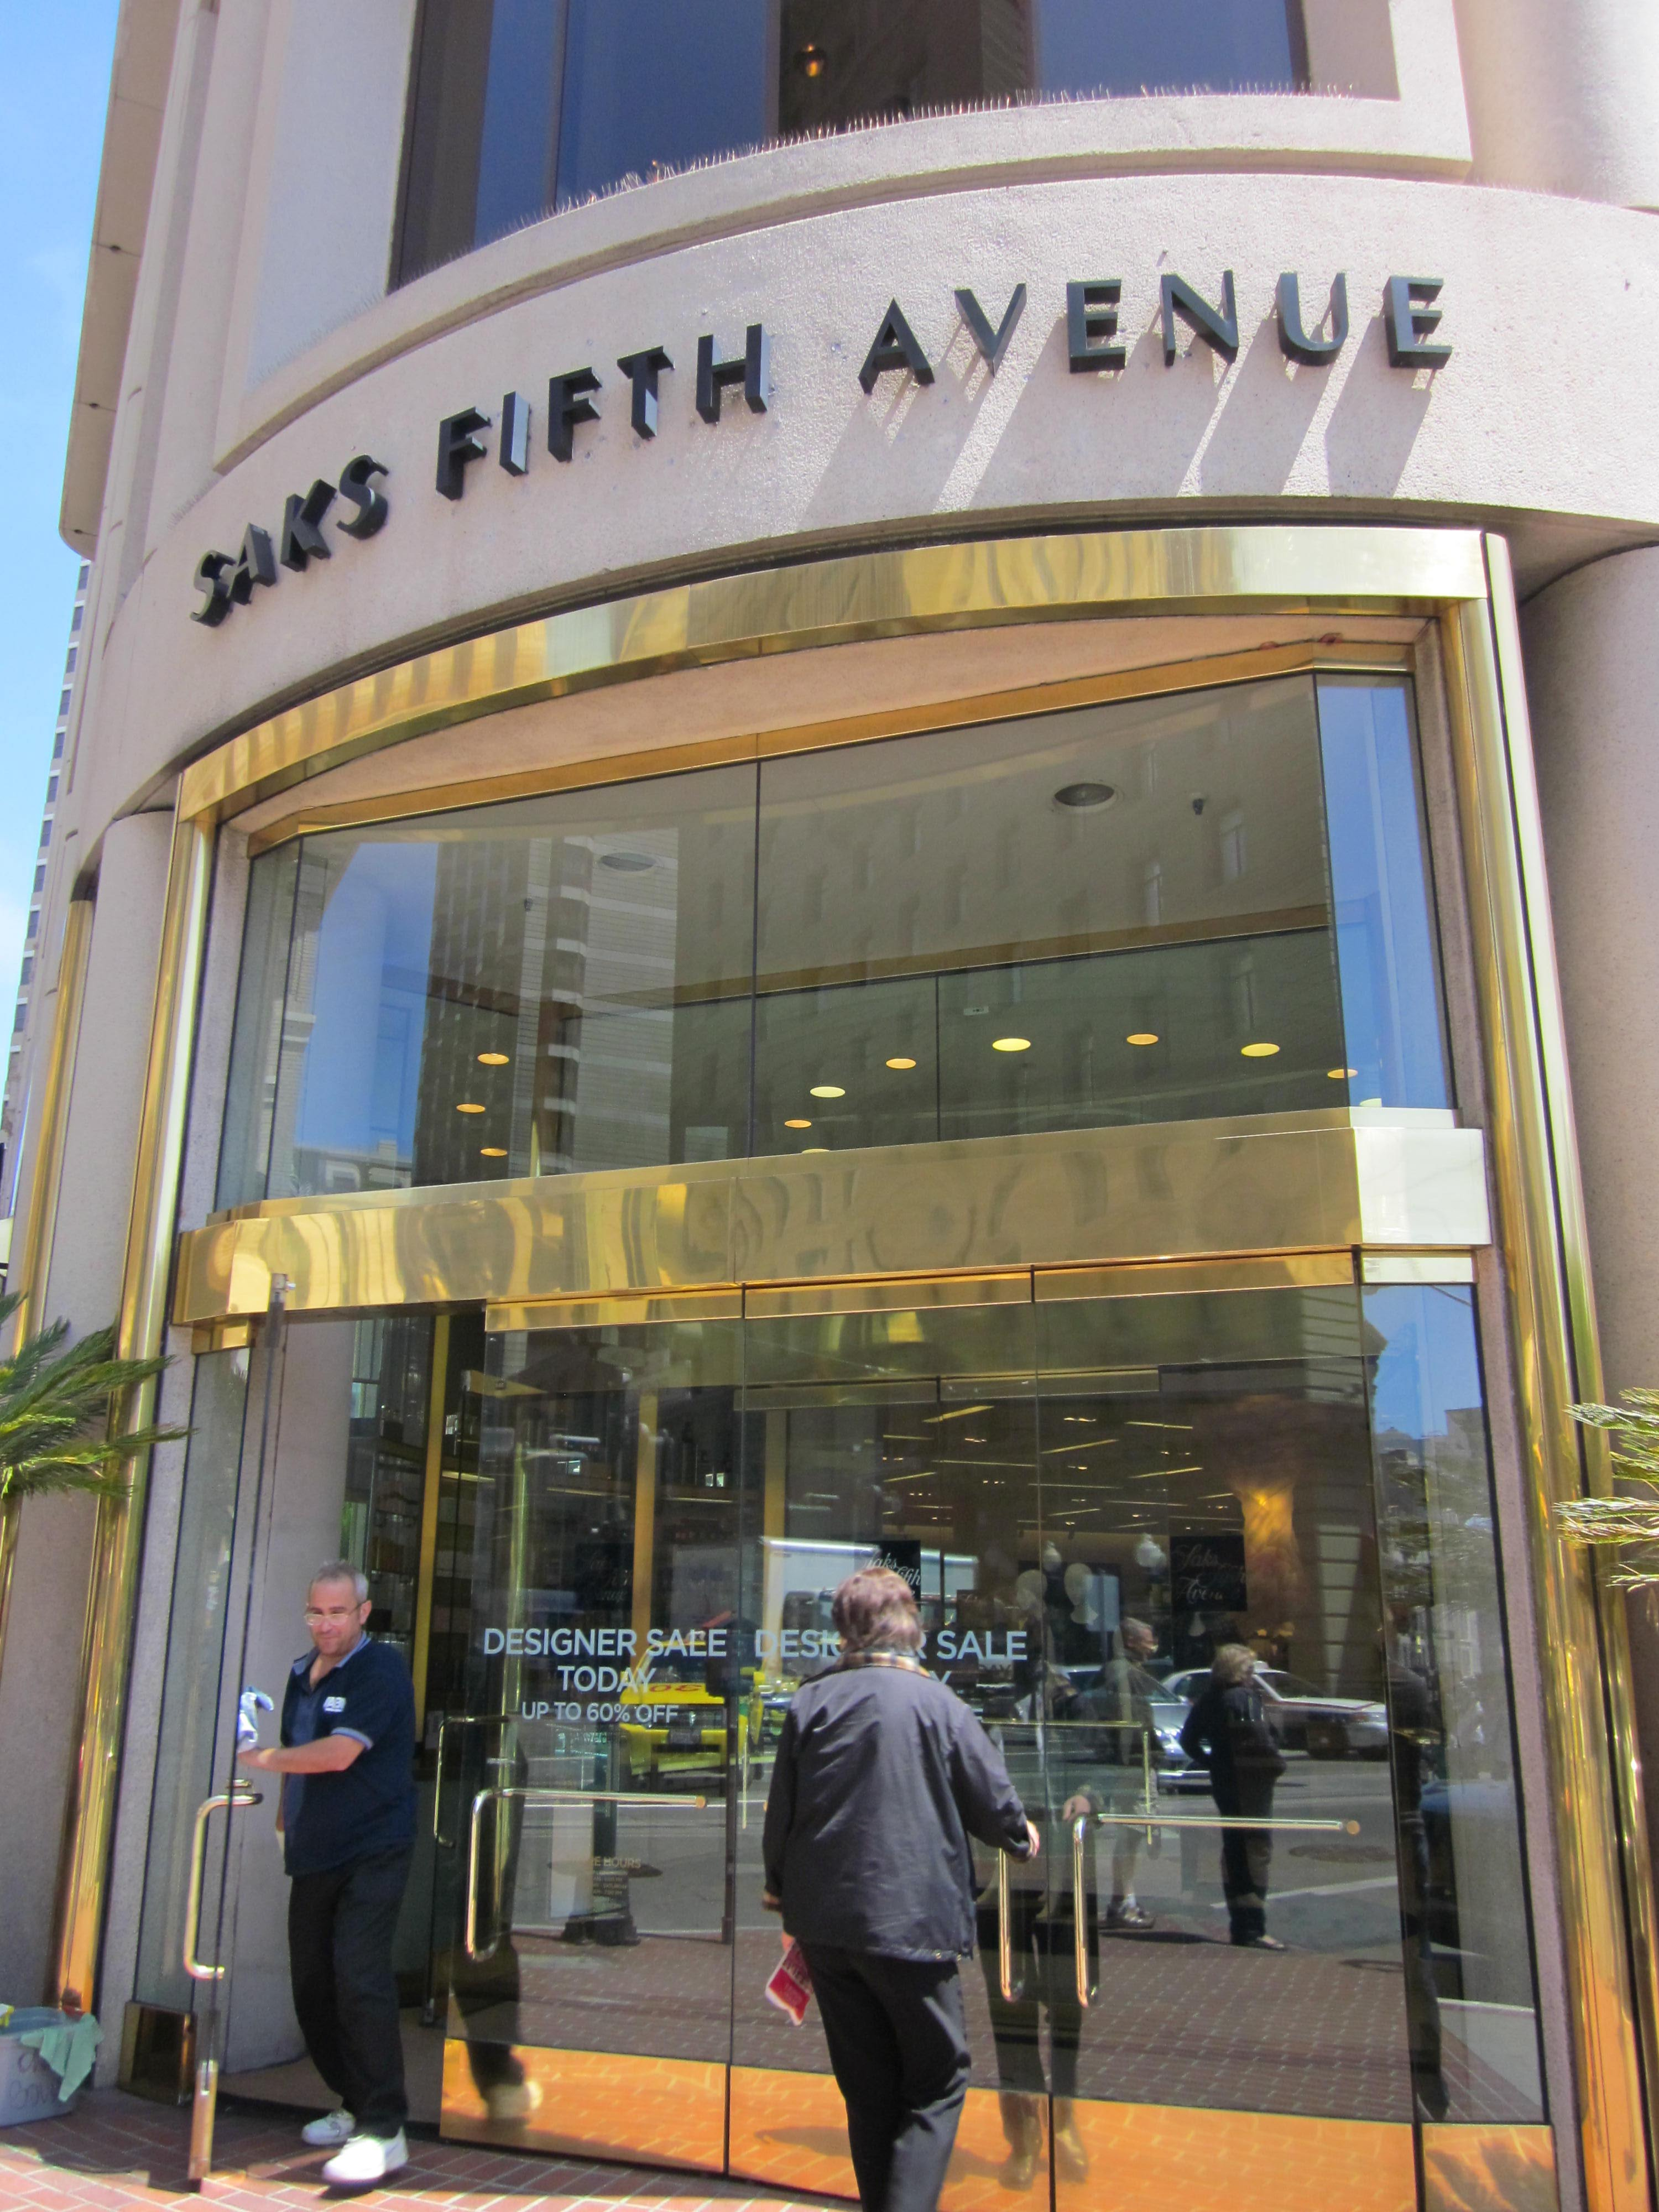 Sax Fifth Avenue Car Wash Coupons